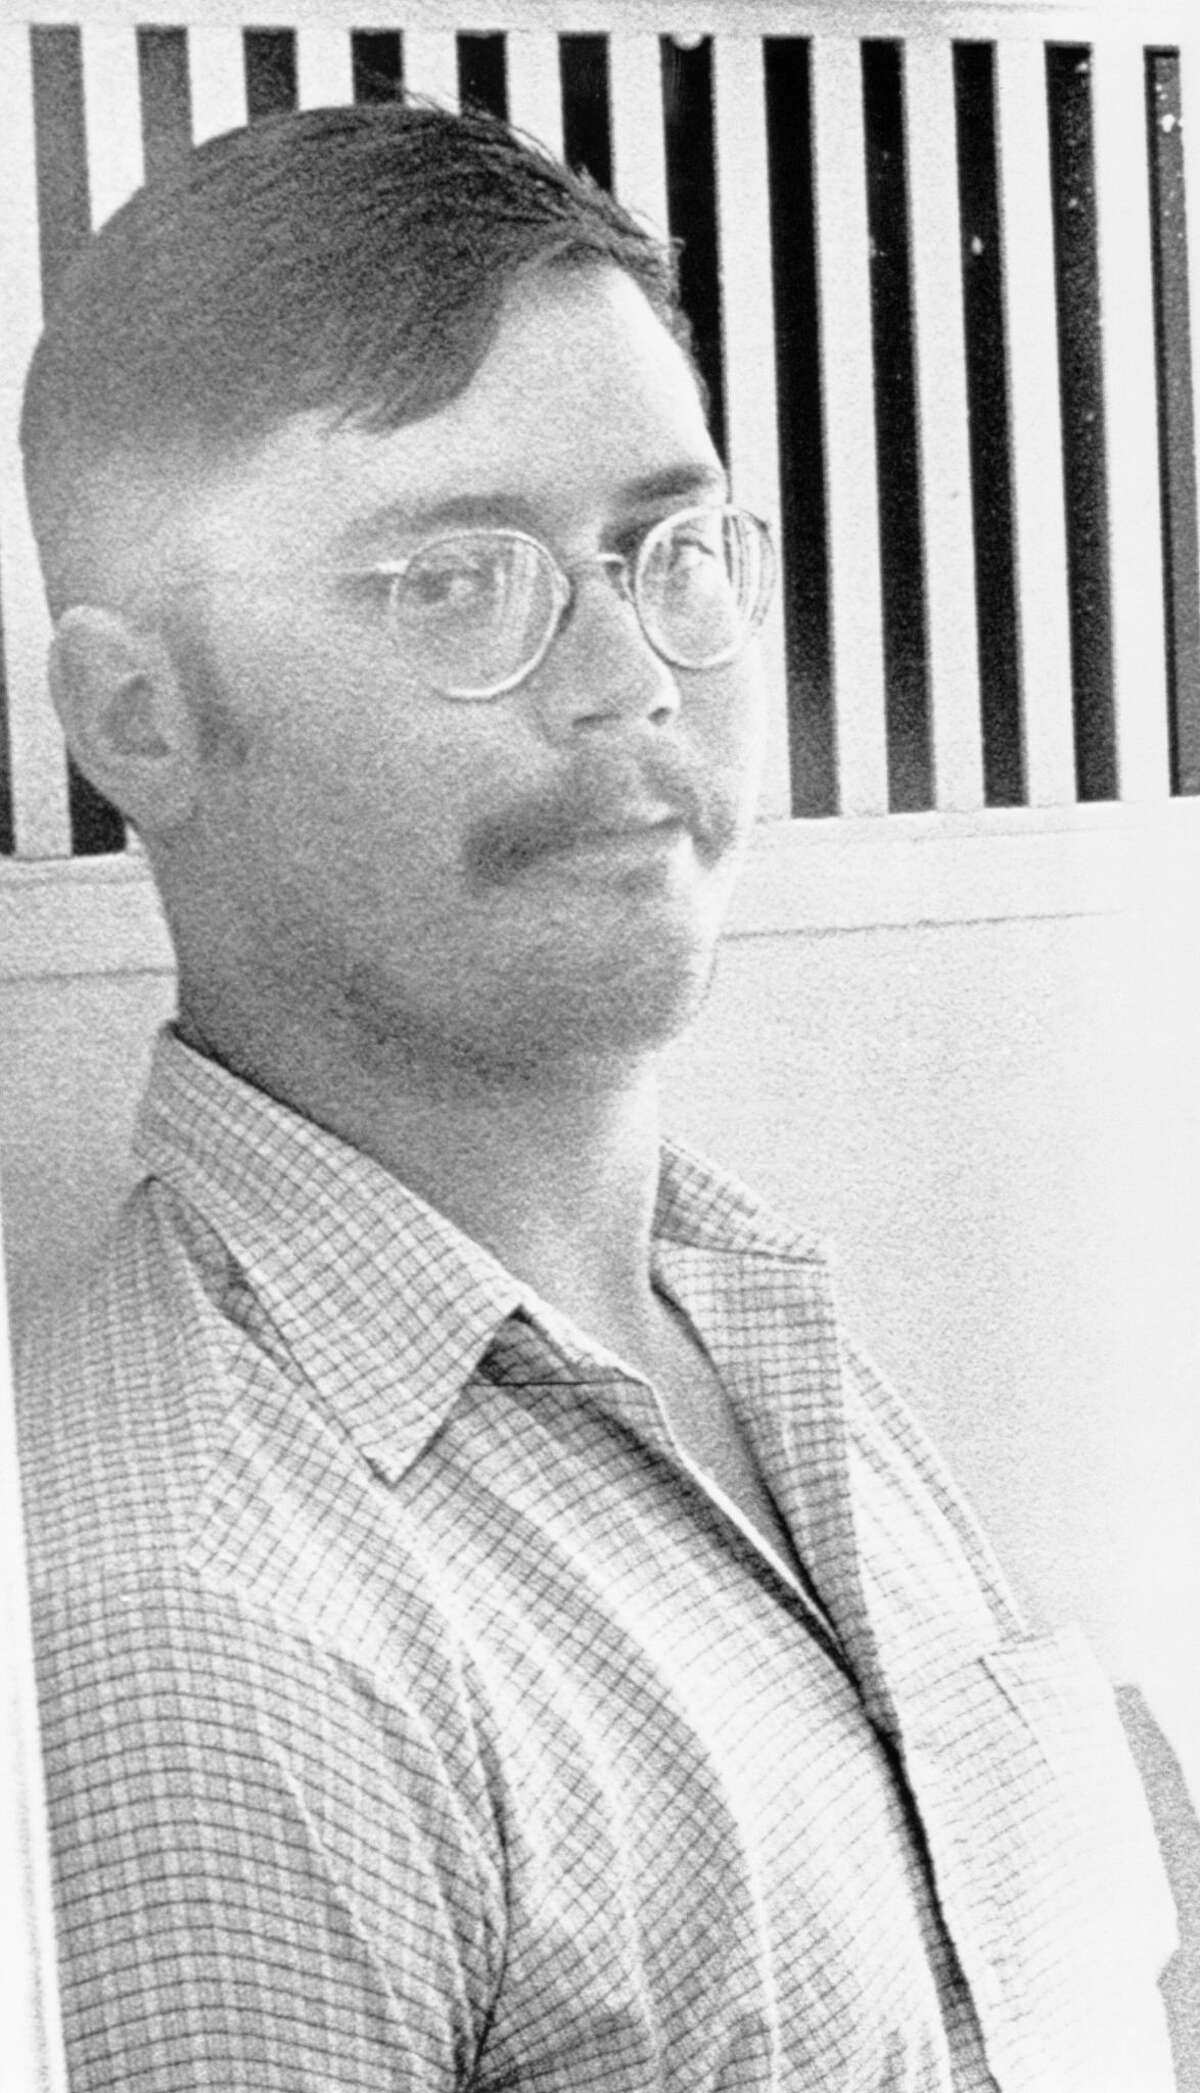 Edmund Kemper, III, 24, of Aptos, after being apprehended by Colorado police for the murders of 10 women in Northern California.